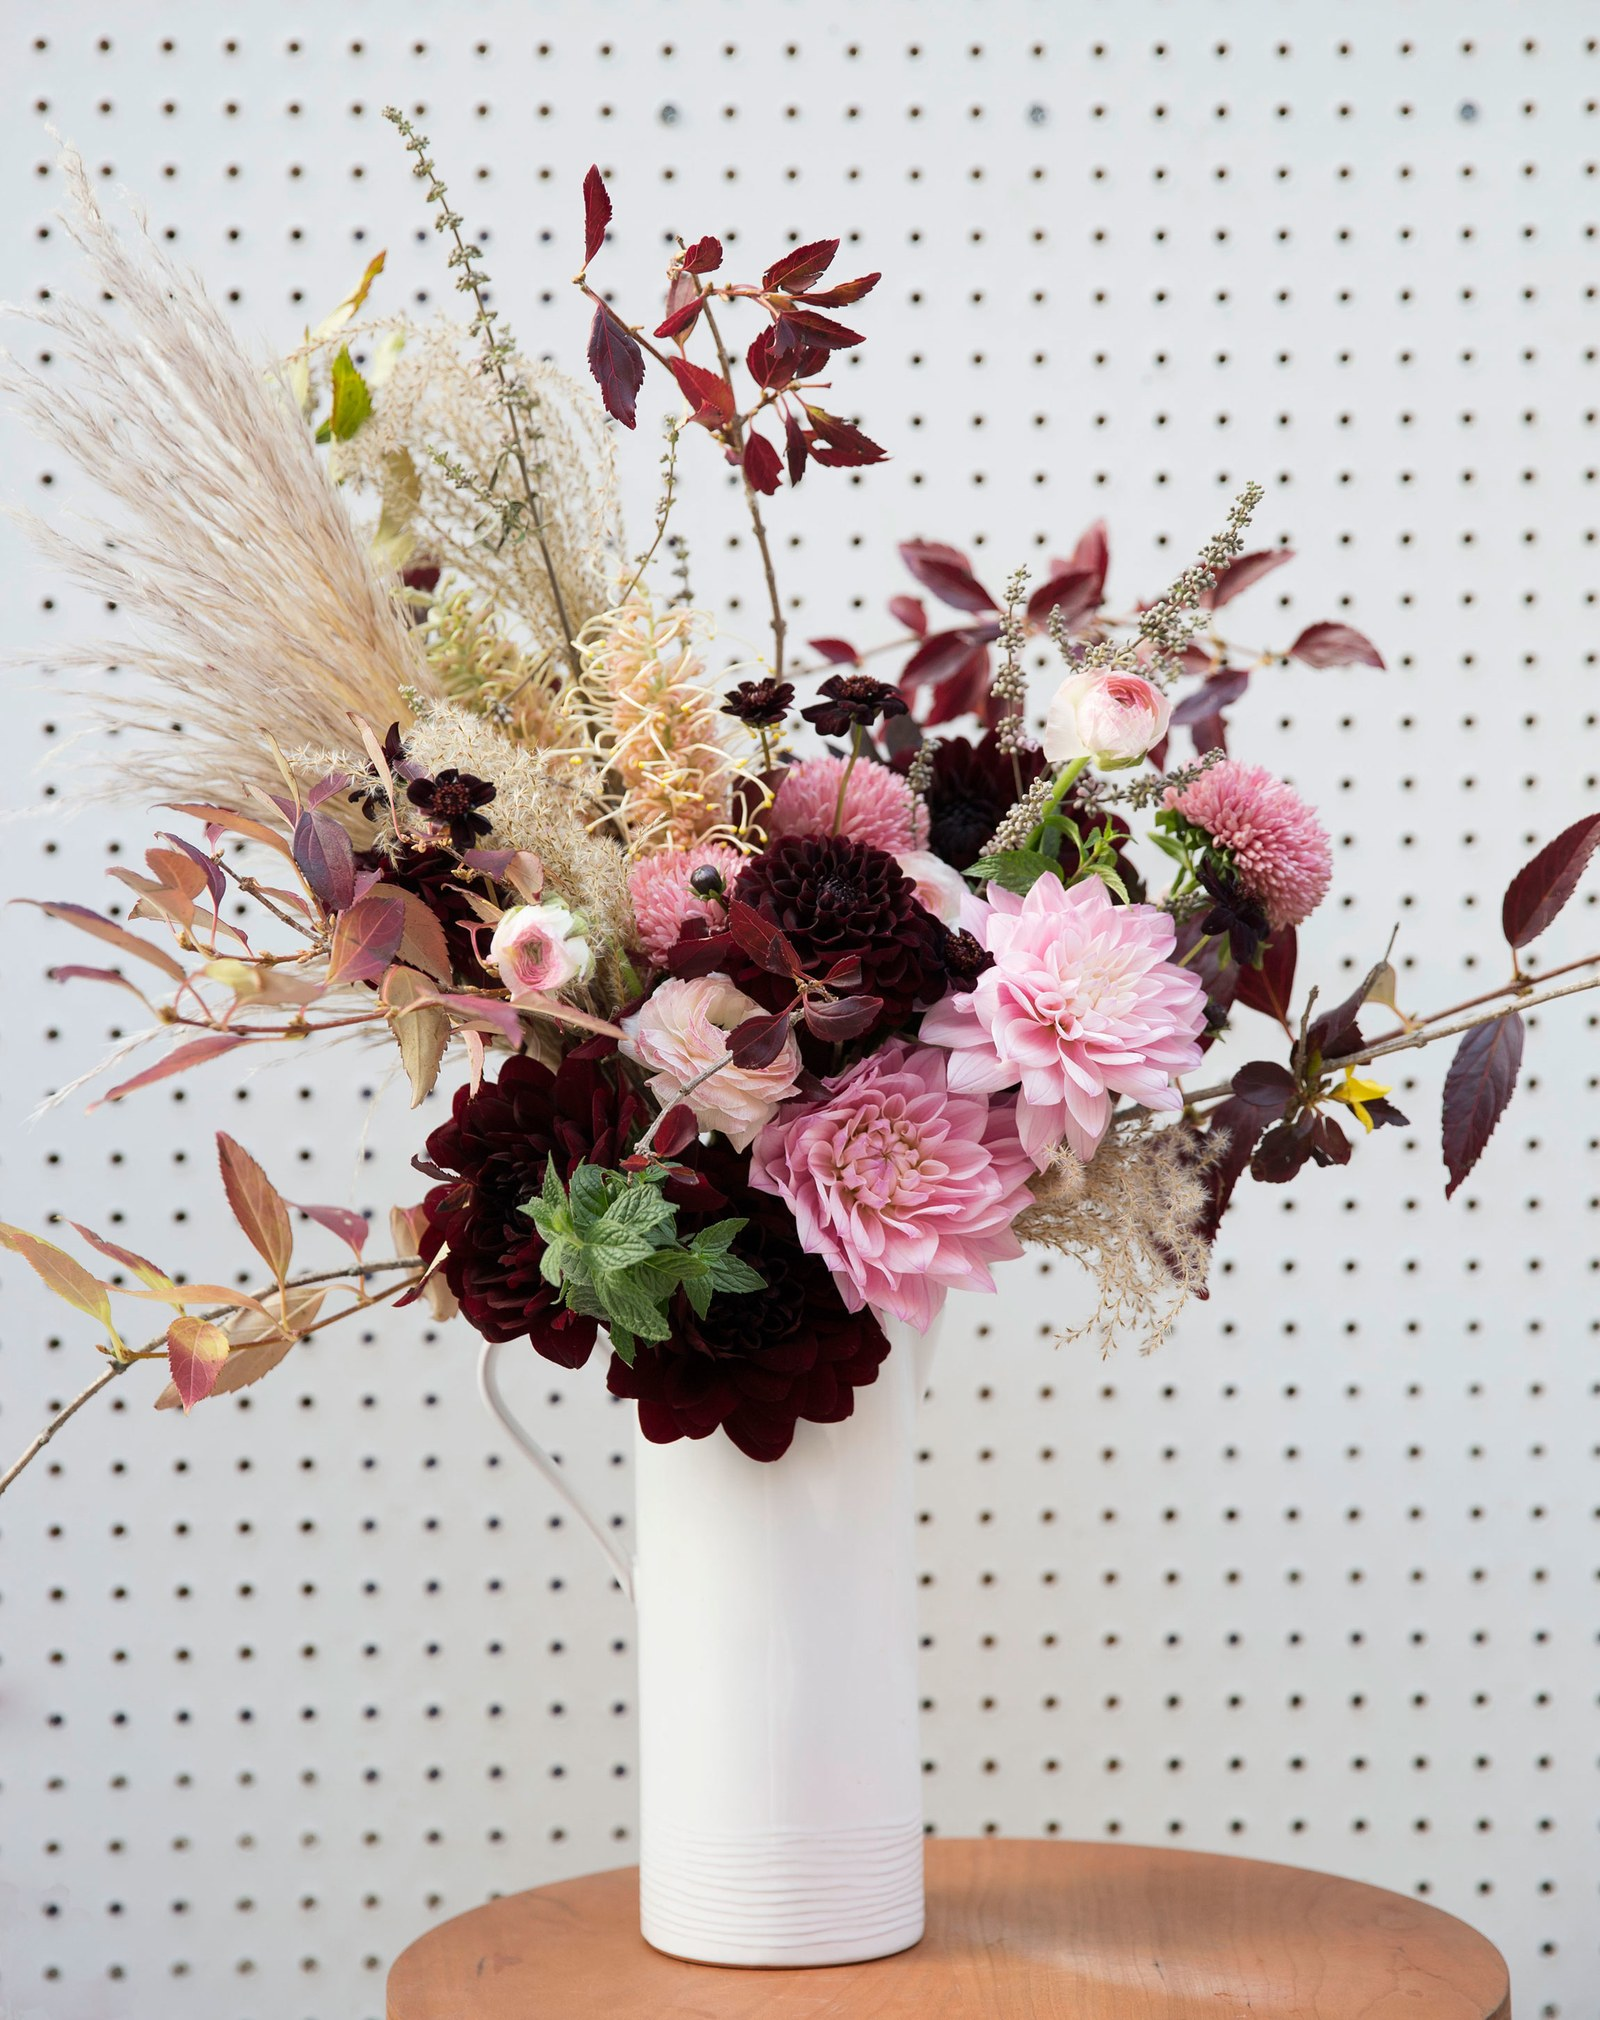 DIY Floral Arrangements to Brighten up Your Day